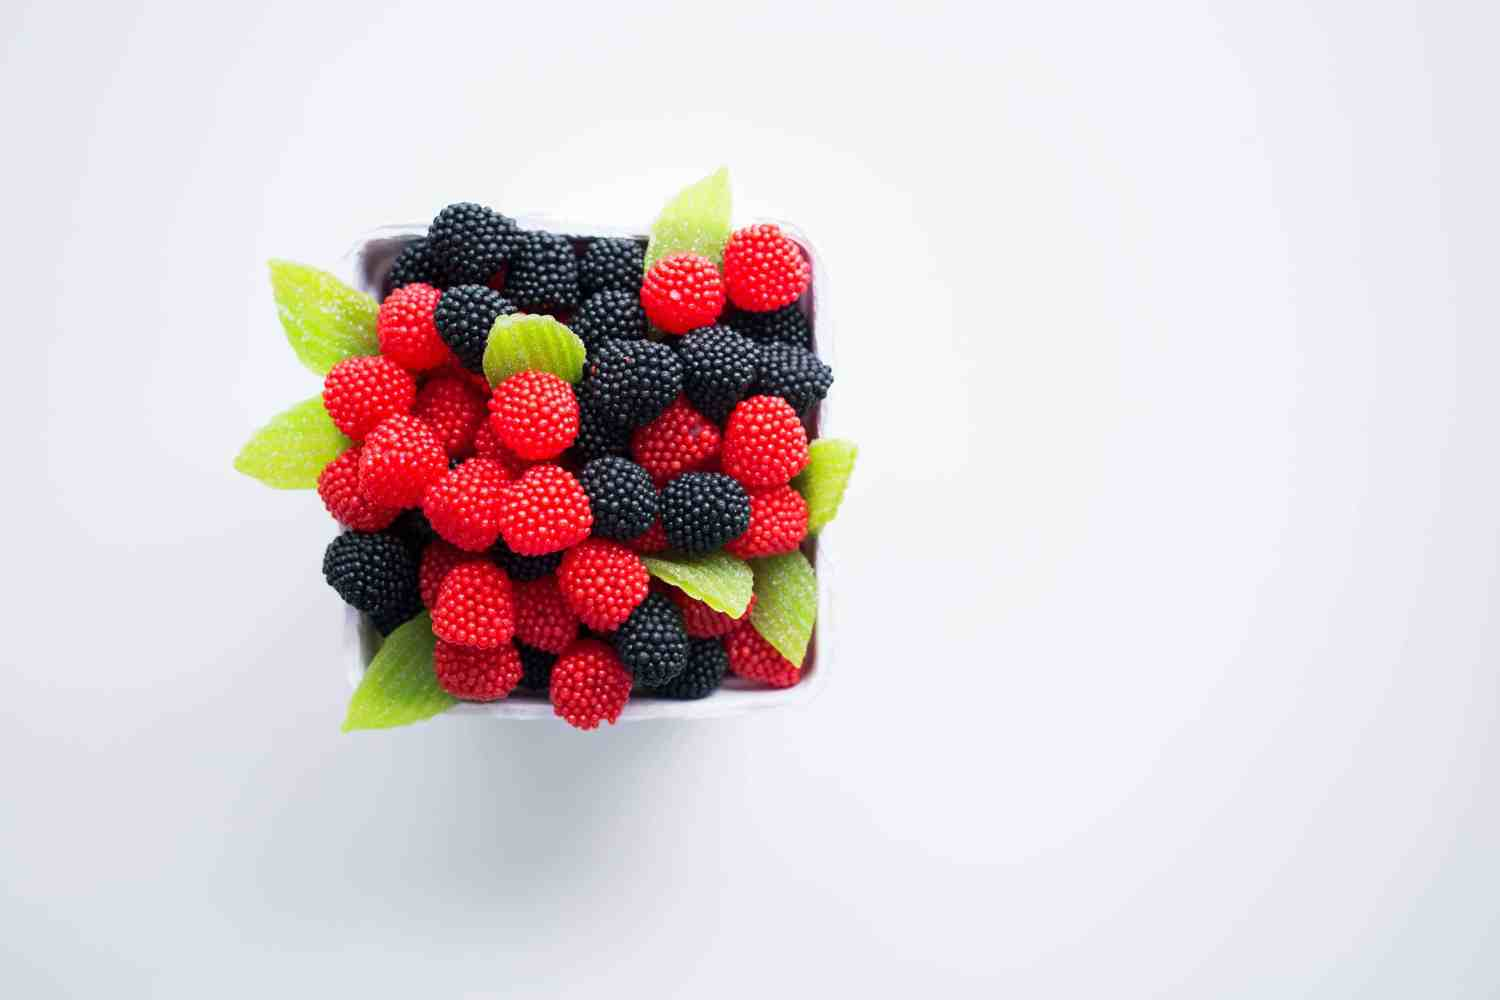 Berries are a pregnancy superfood